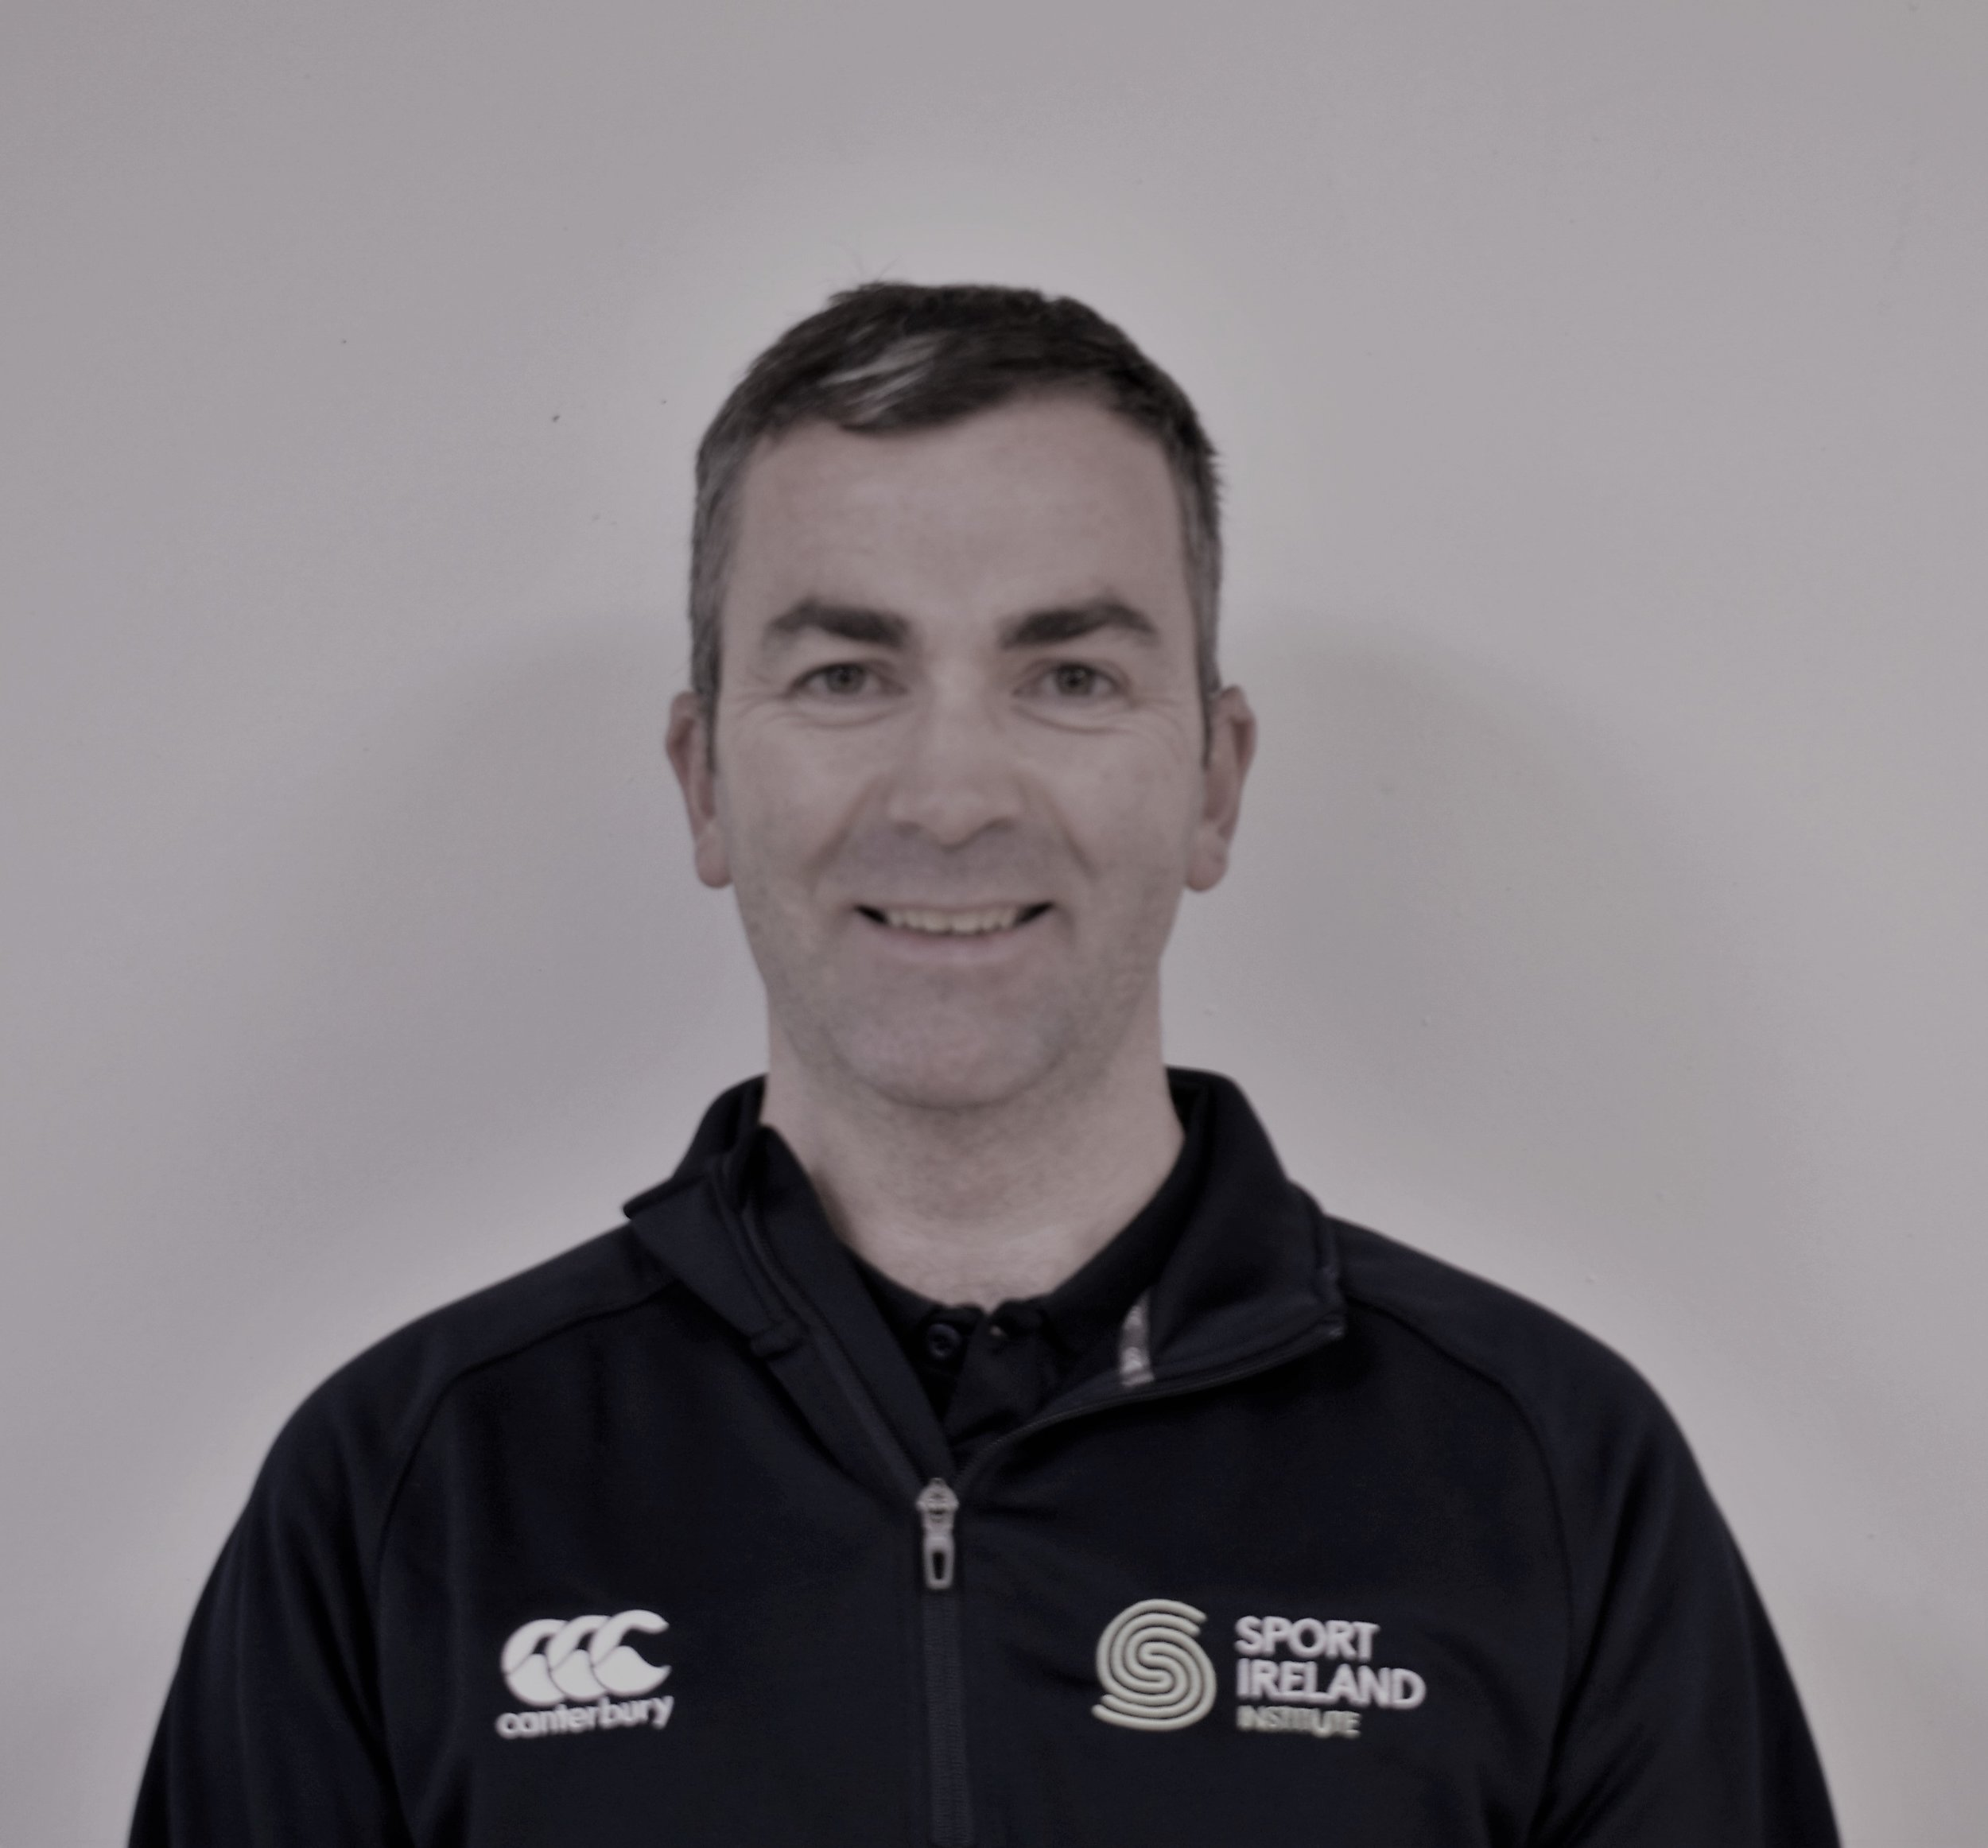 Alan Swanton, Head of Performance Analysis